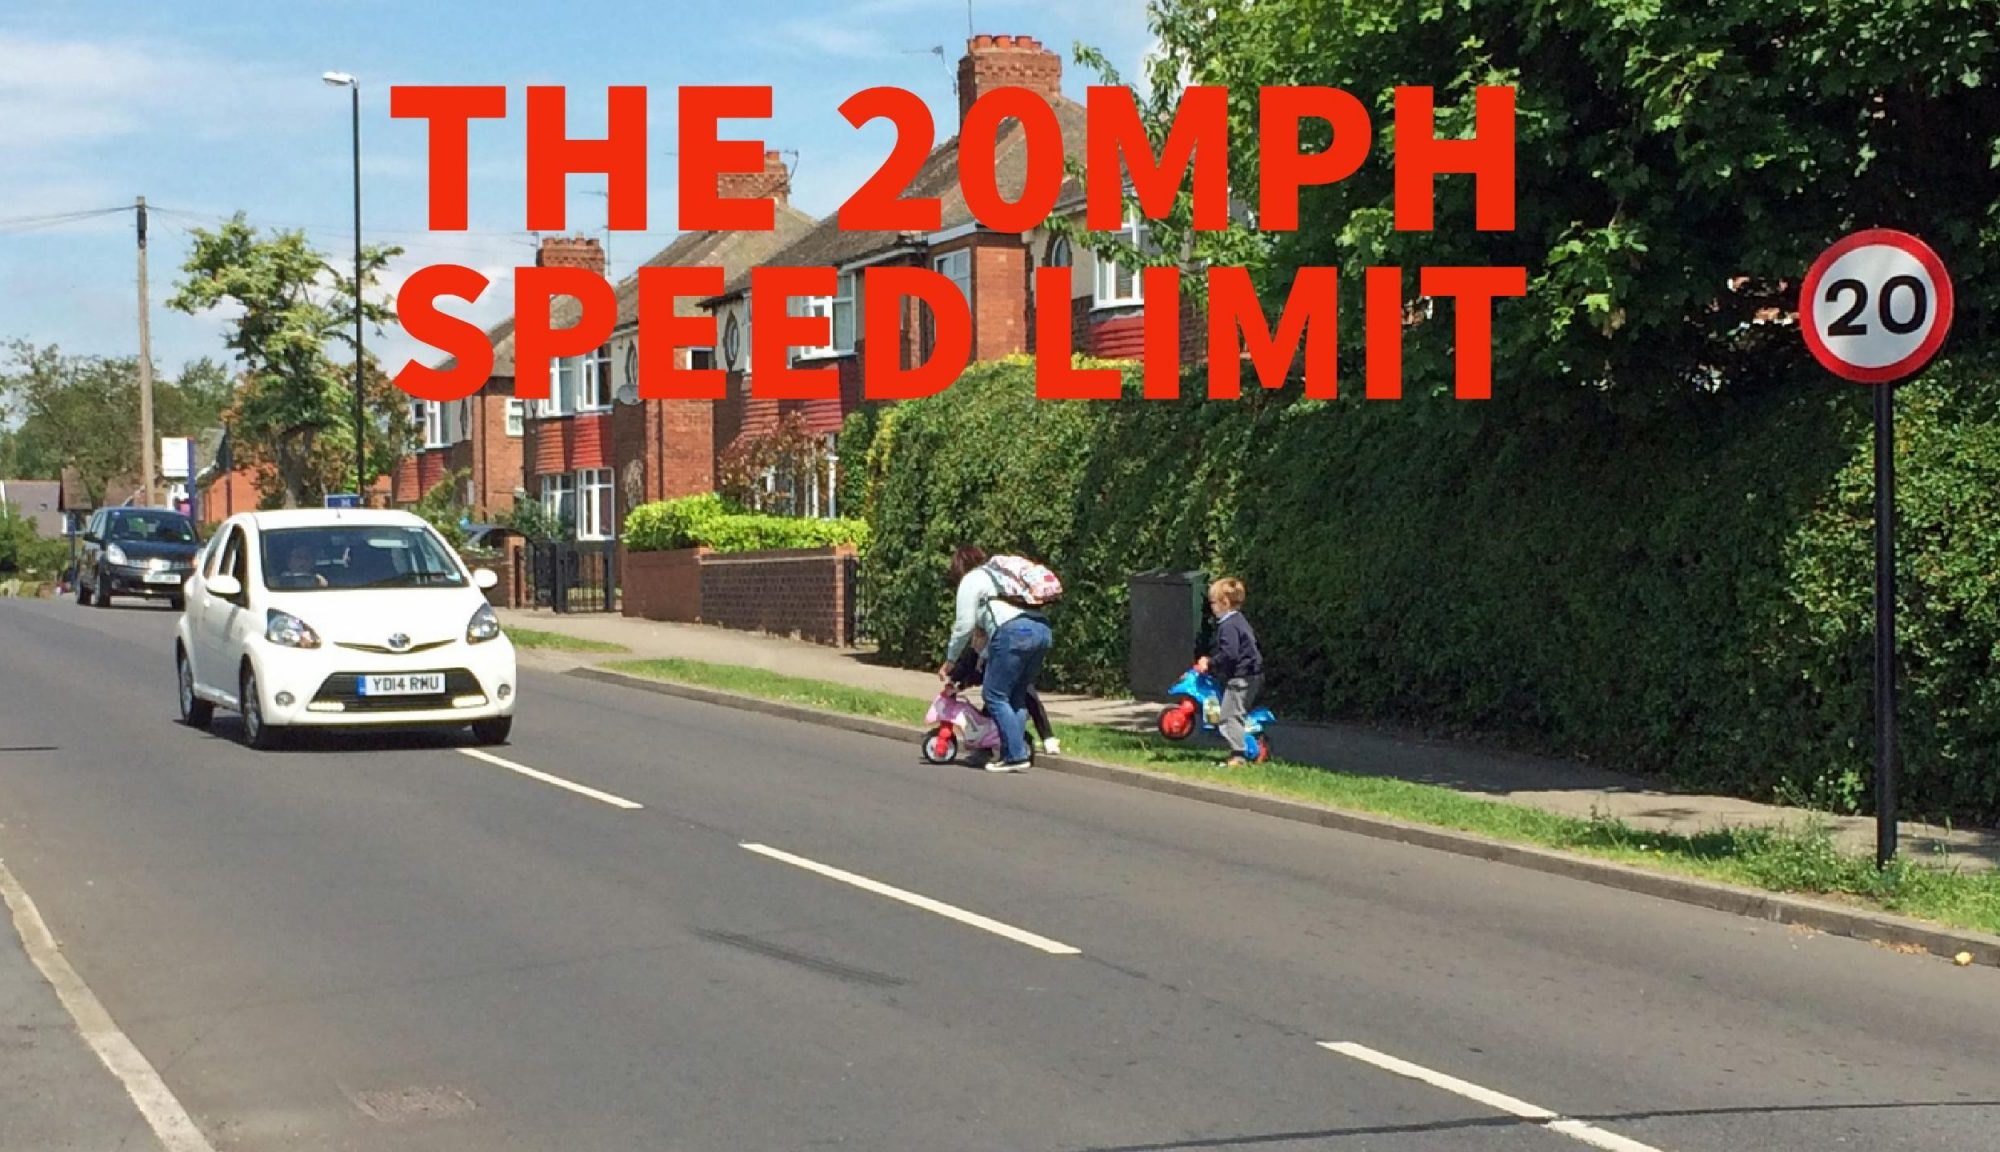 The 20mph Speed Limit